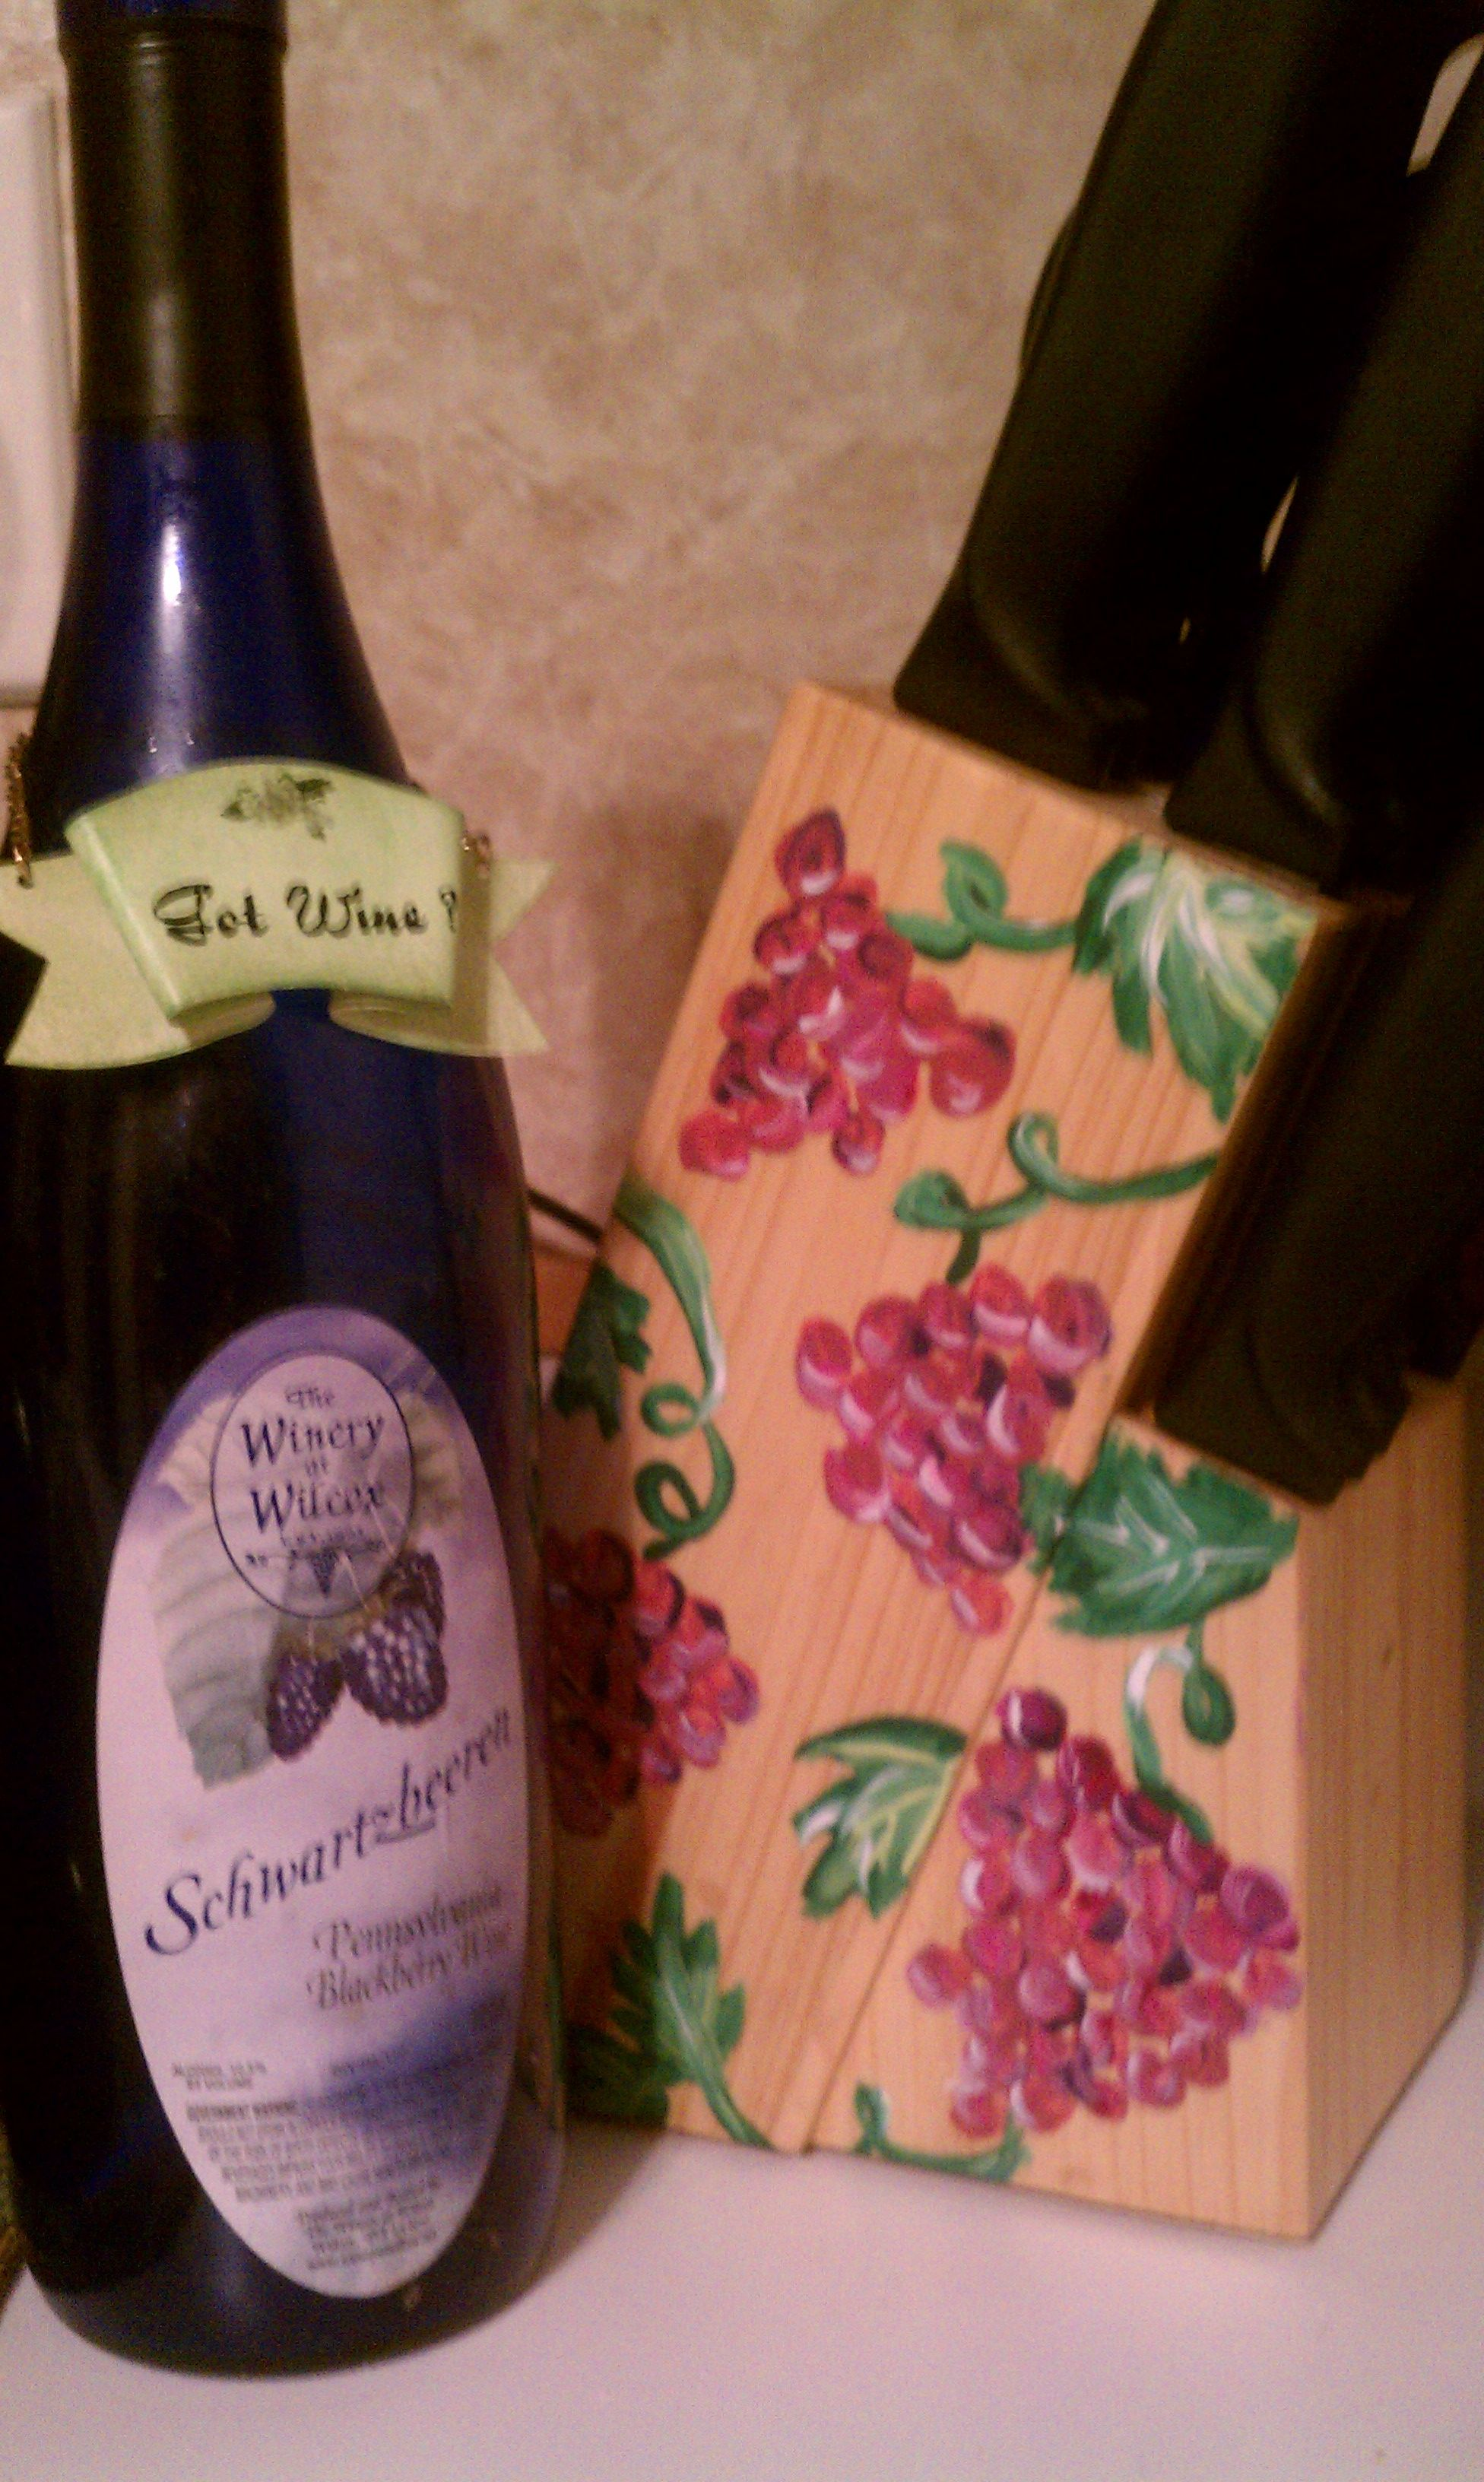 Empty Wine Bottle Holder Paint Some Grapes On A Wooden Knife Holder And Add A Lil